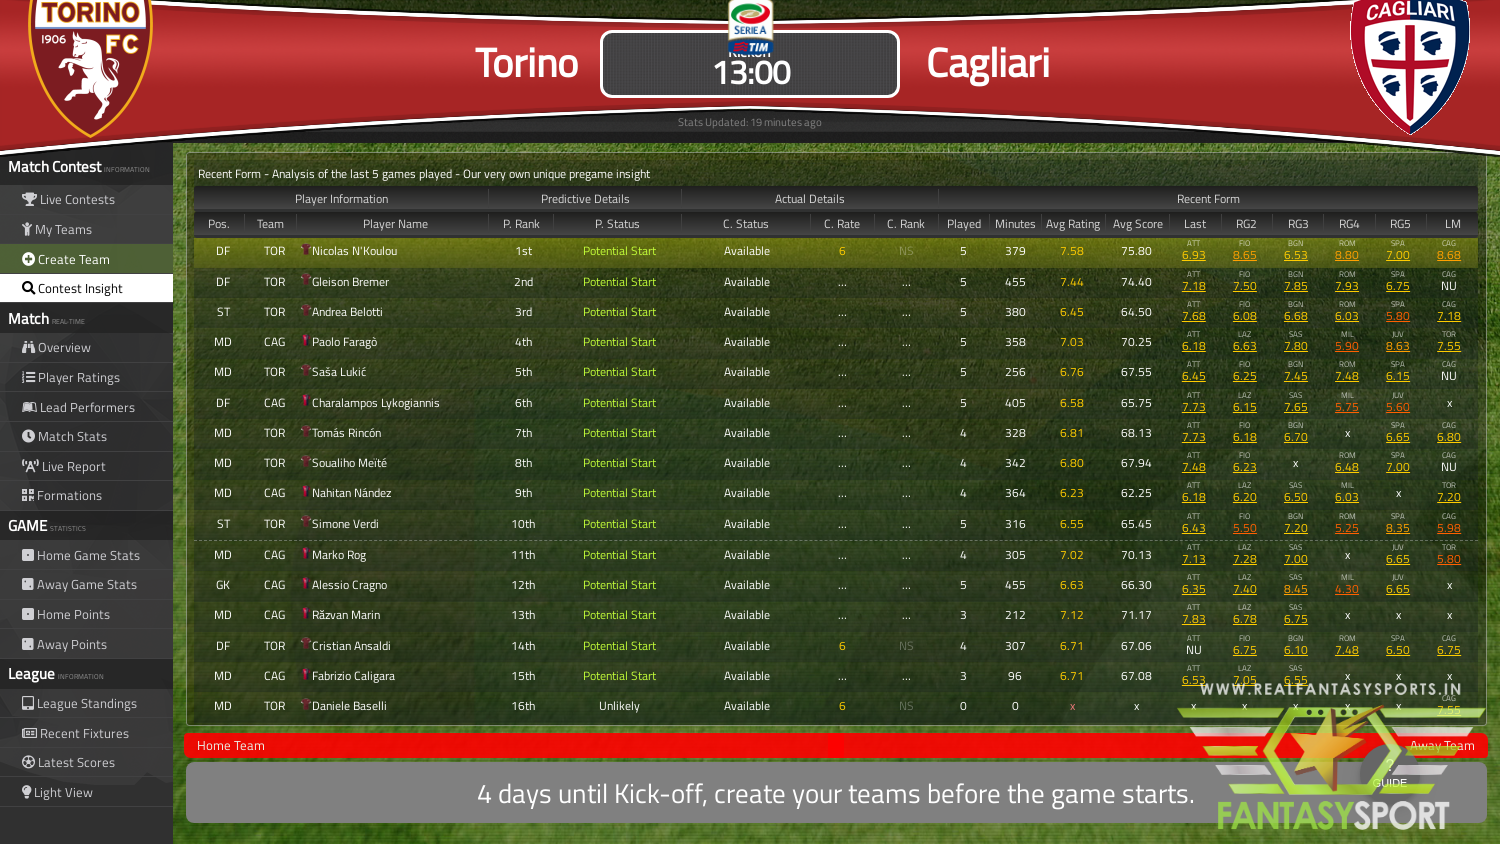 Dream Team Pick For Torino Vs Cagliari